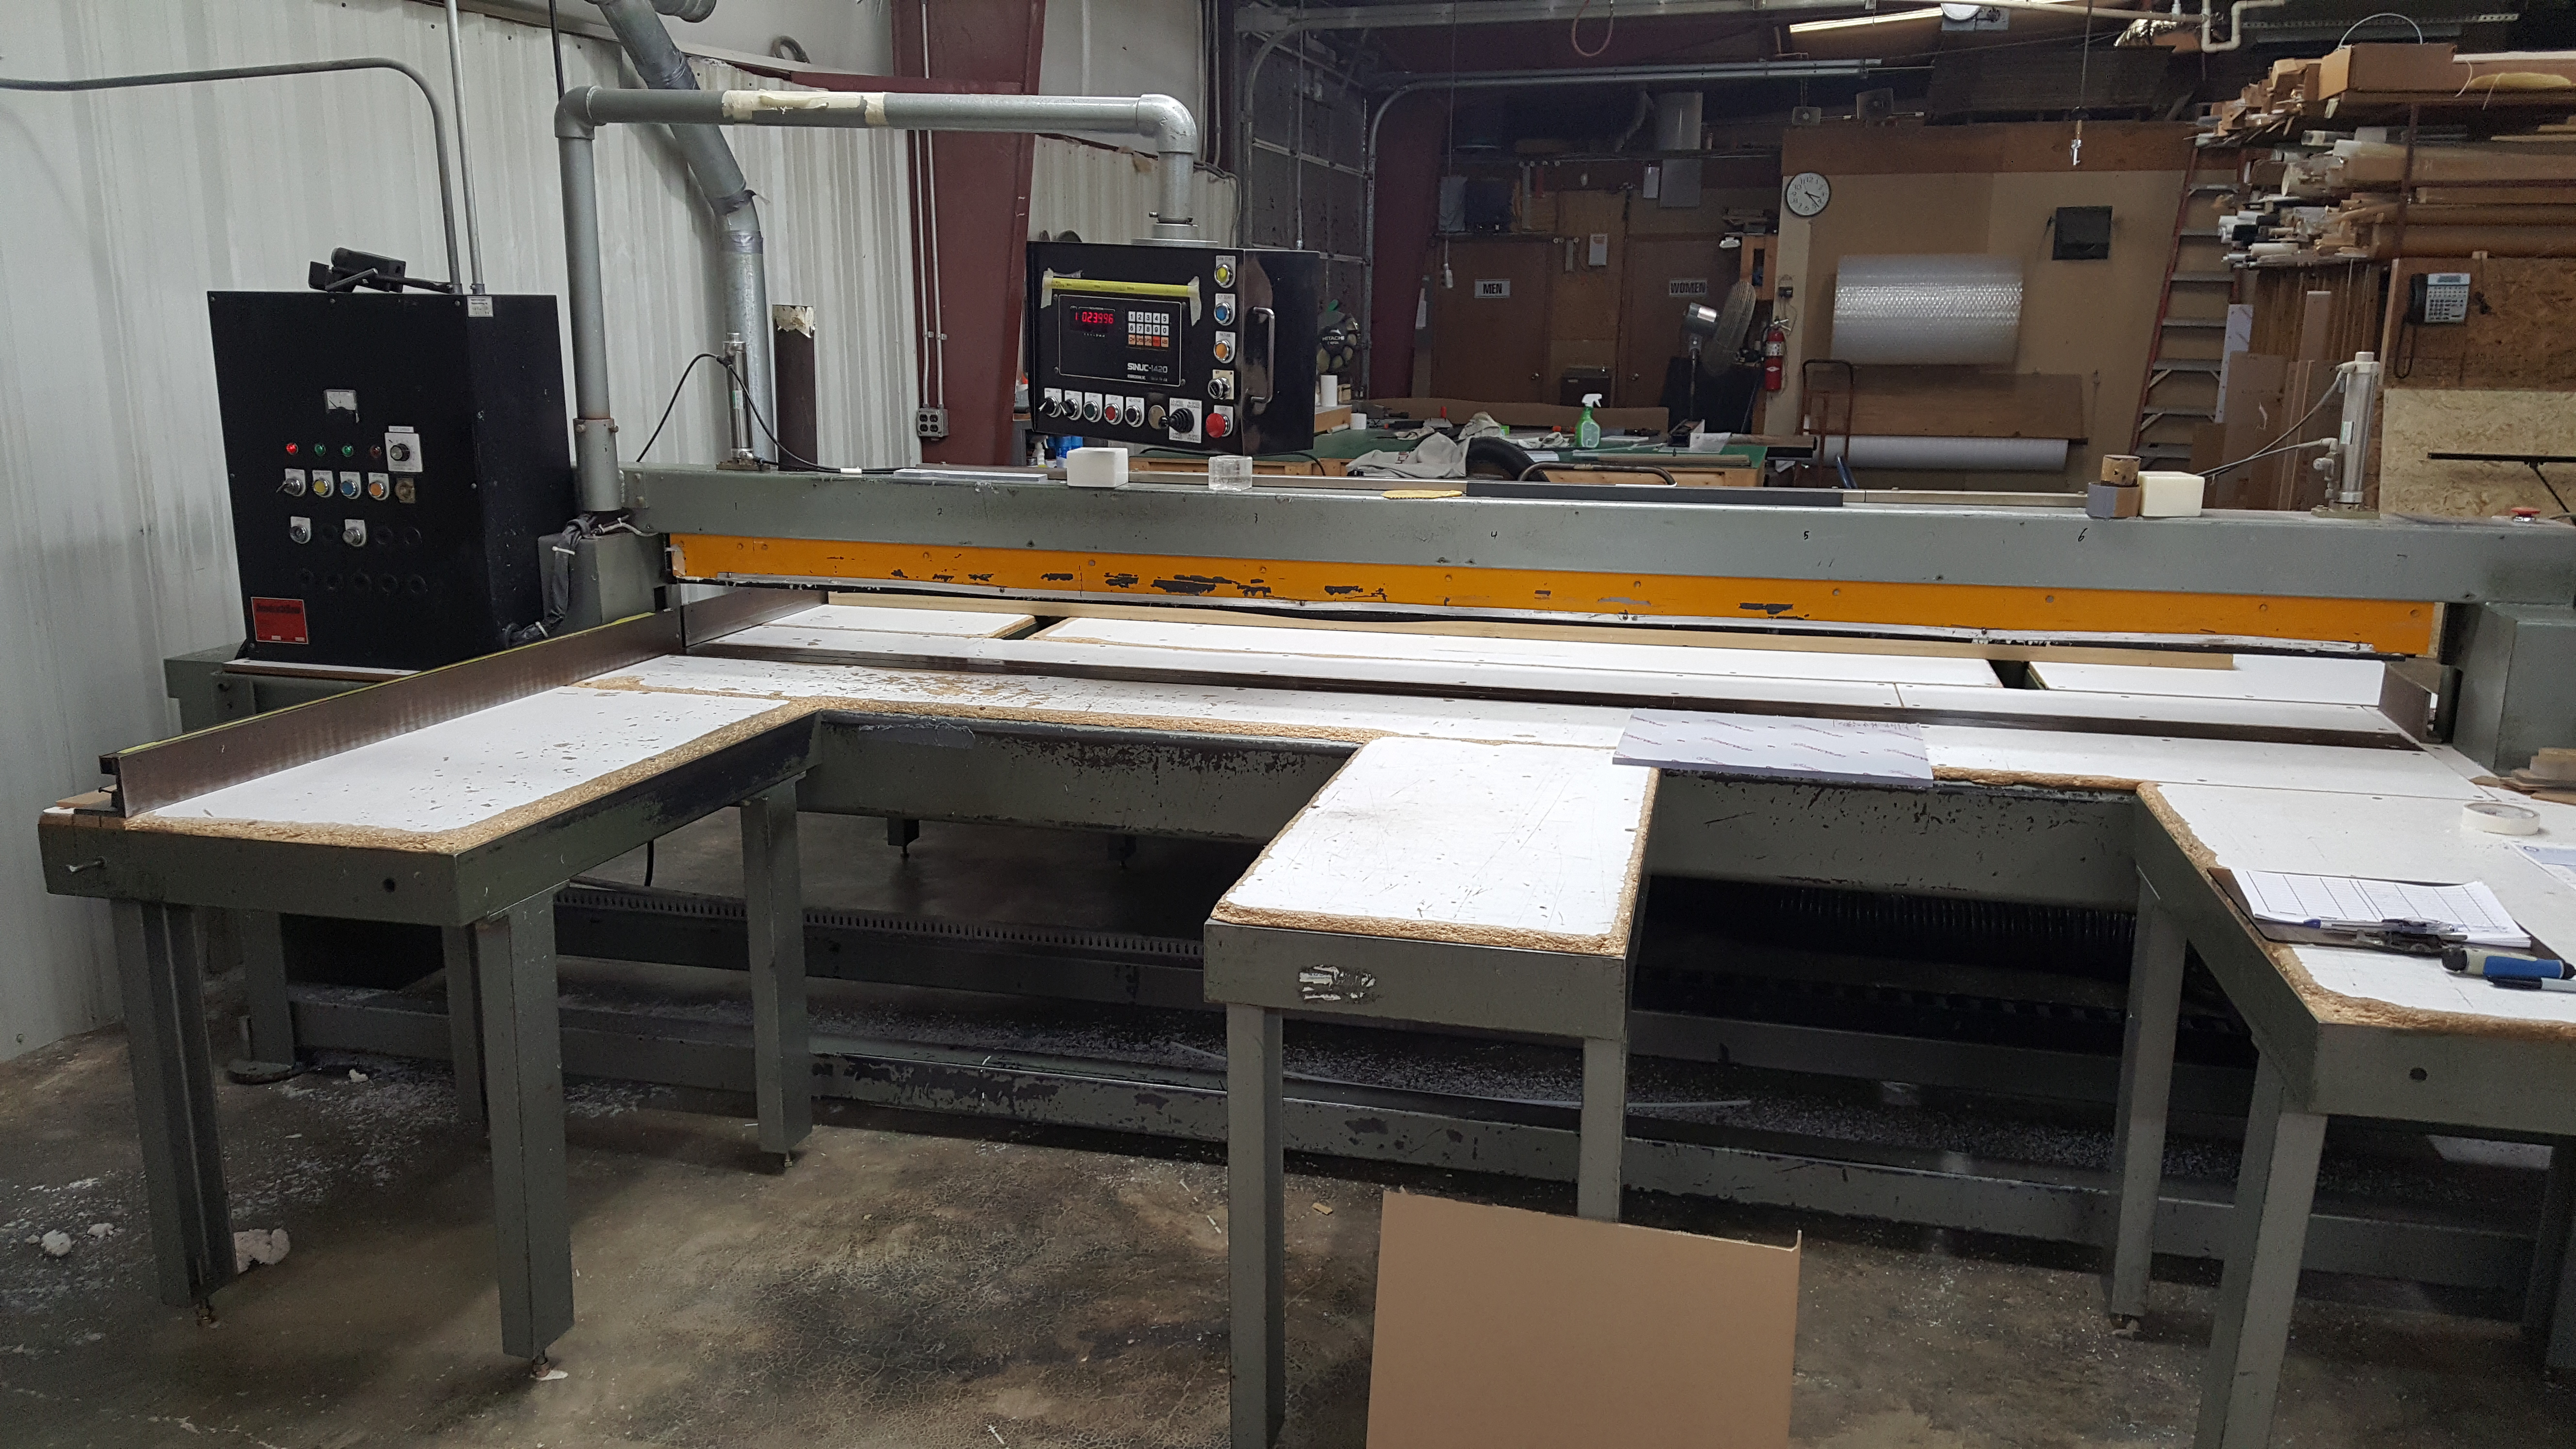 CNC Sawing Table 10' X 10'